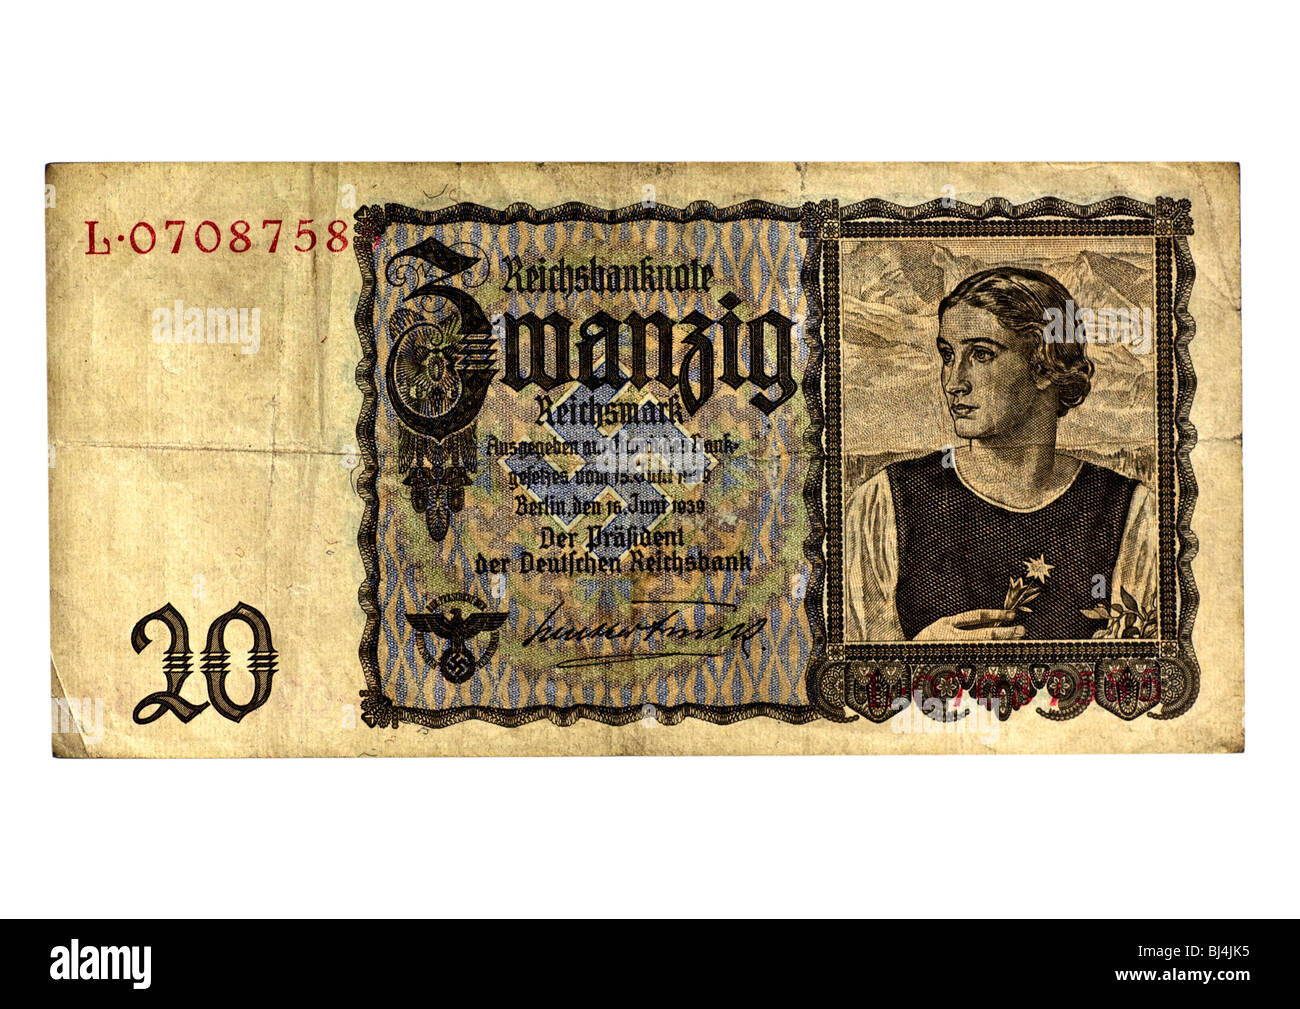 Front of a Reichsbanknote bill of the Central Bank over 20 marks, Berlin, Germany, June 16th 1939 Stock Photo